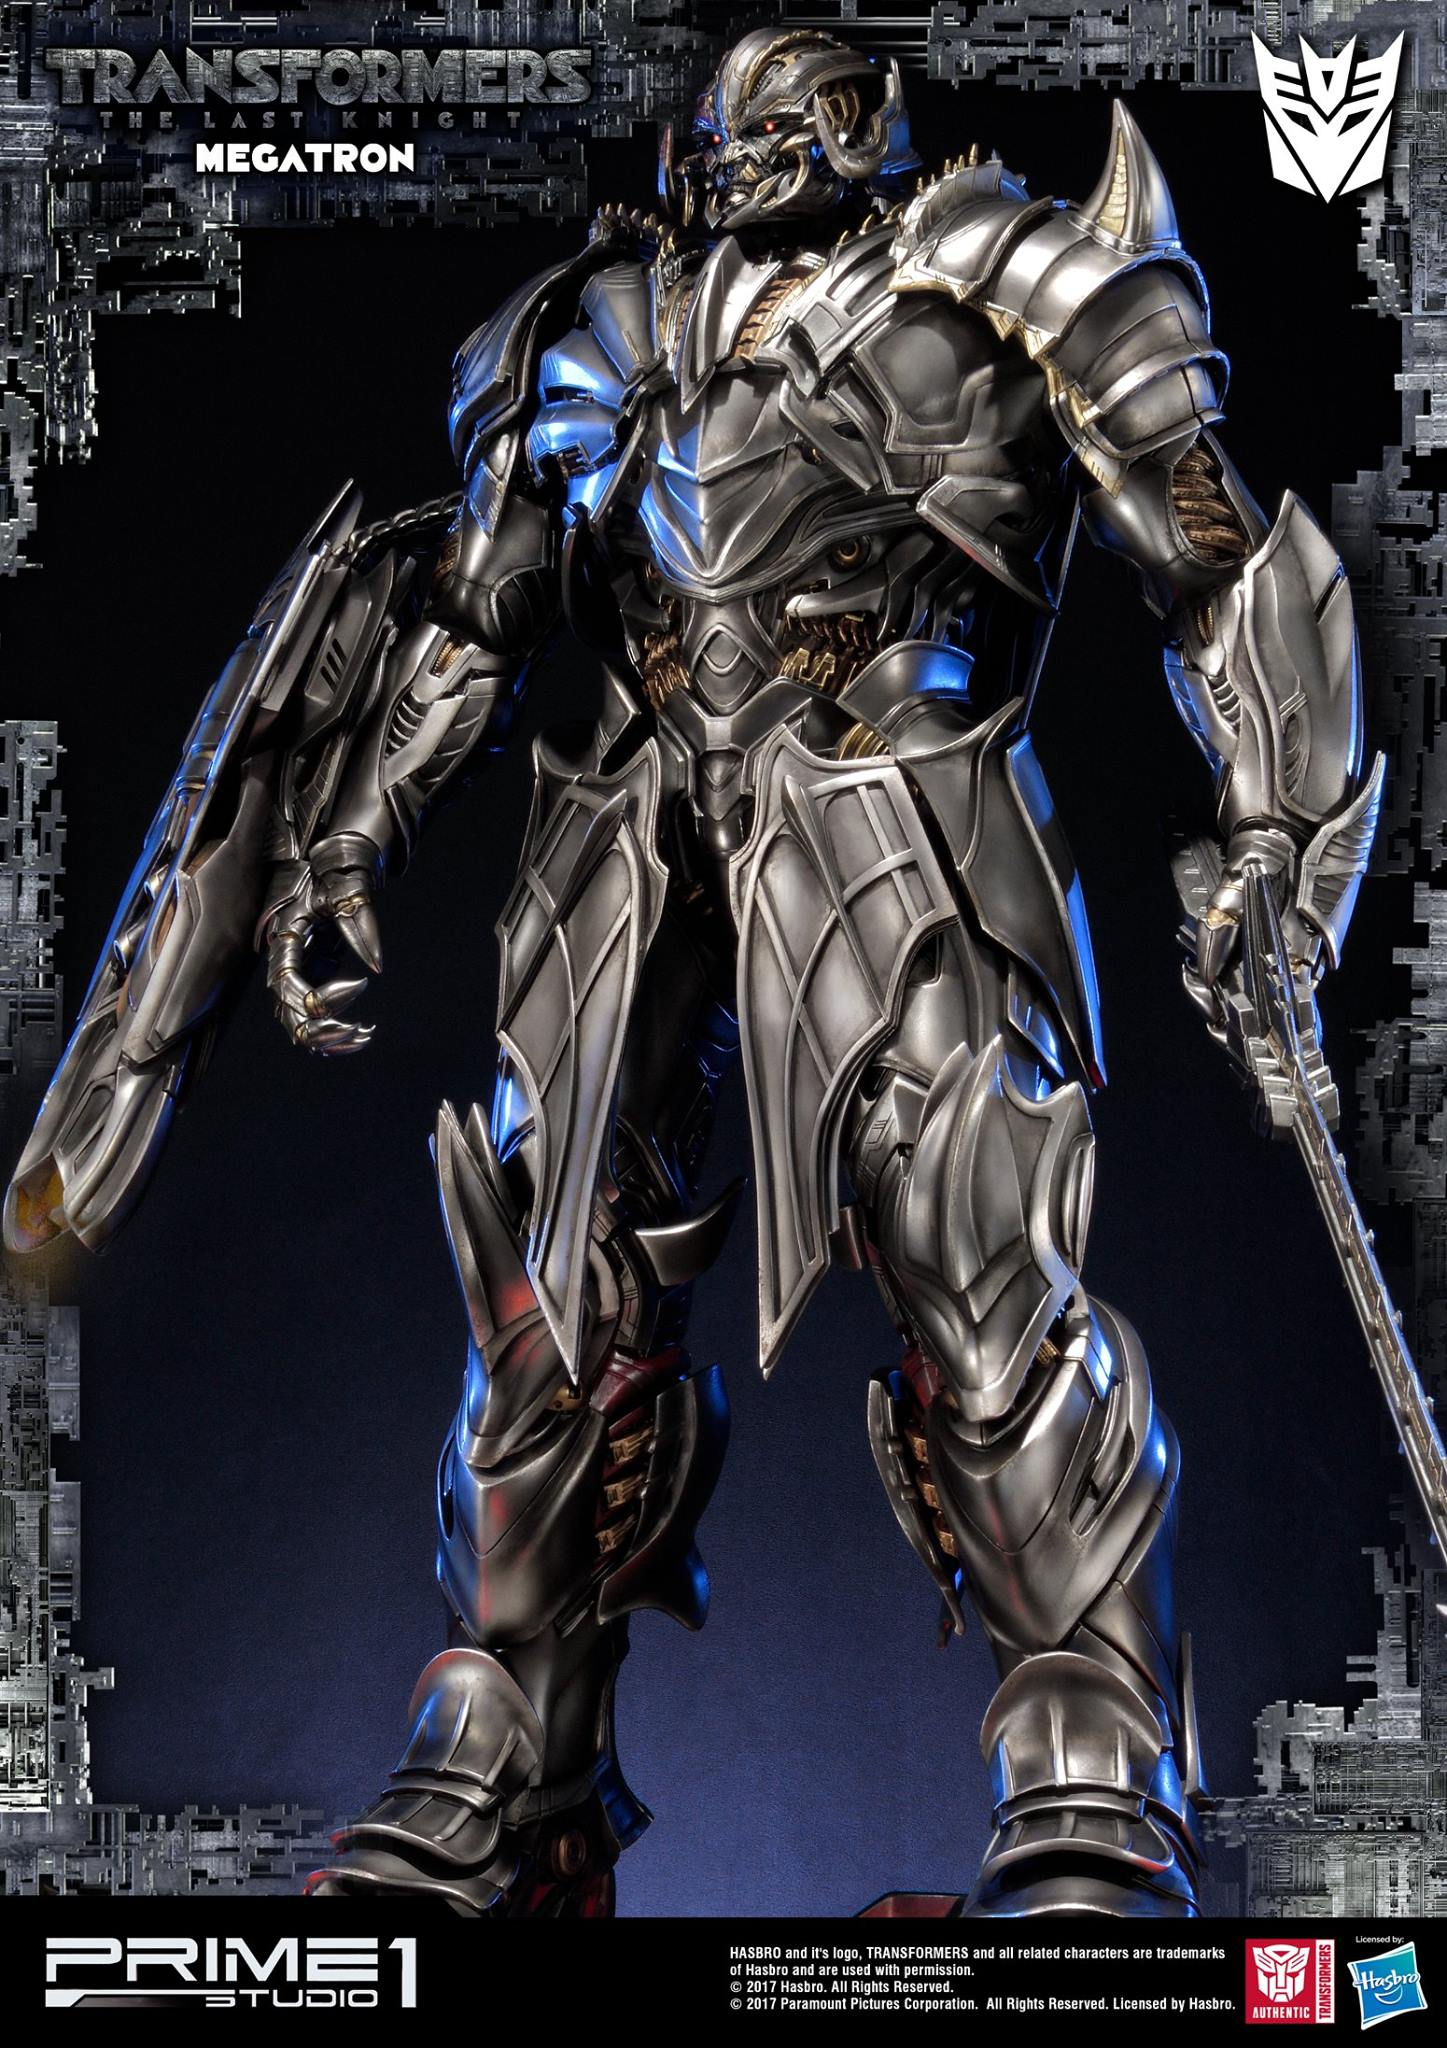 How To Set Animated Wallpaper Prime 1 Studios The Last Knight Megatron Statue